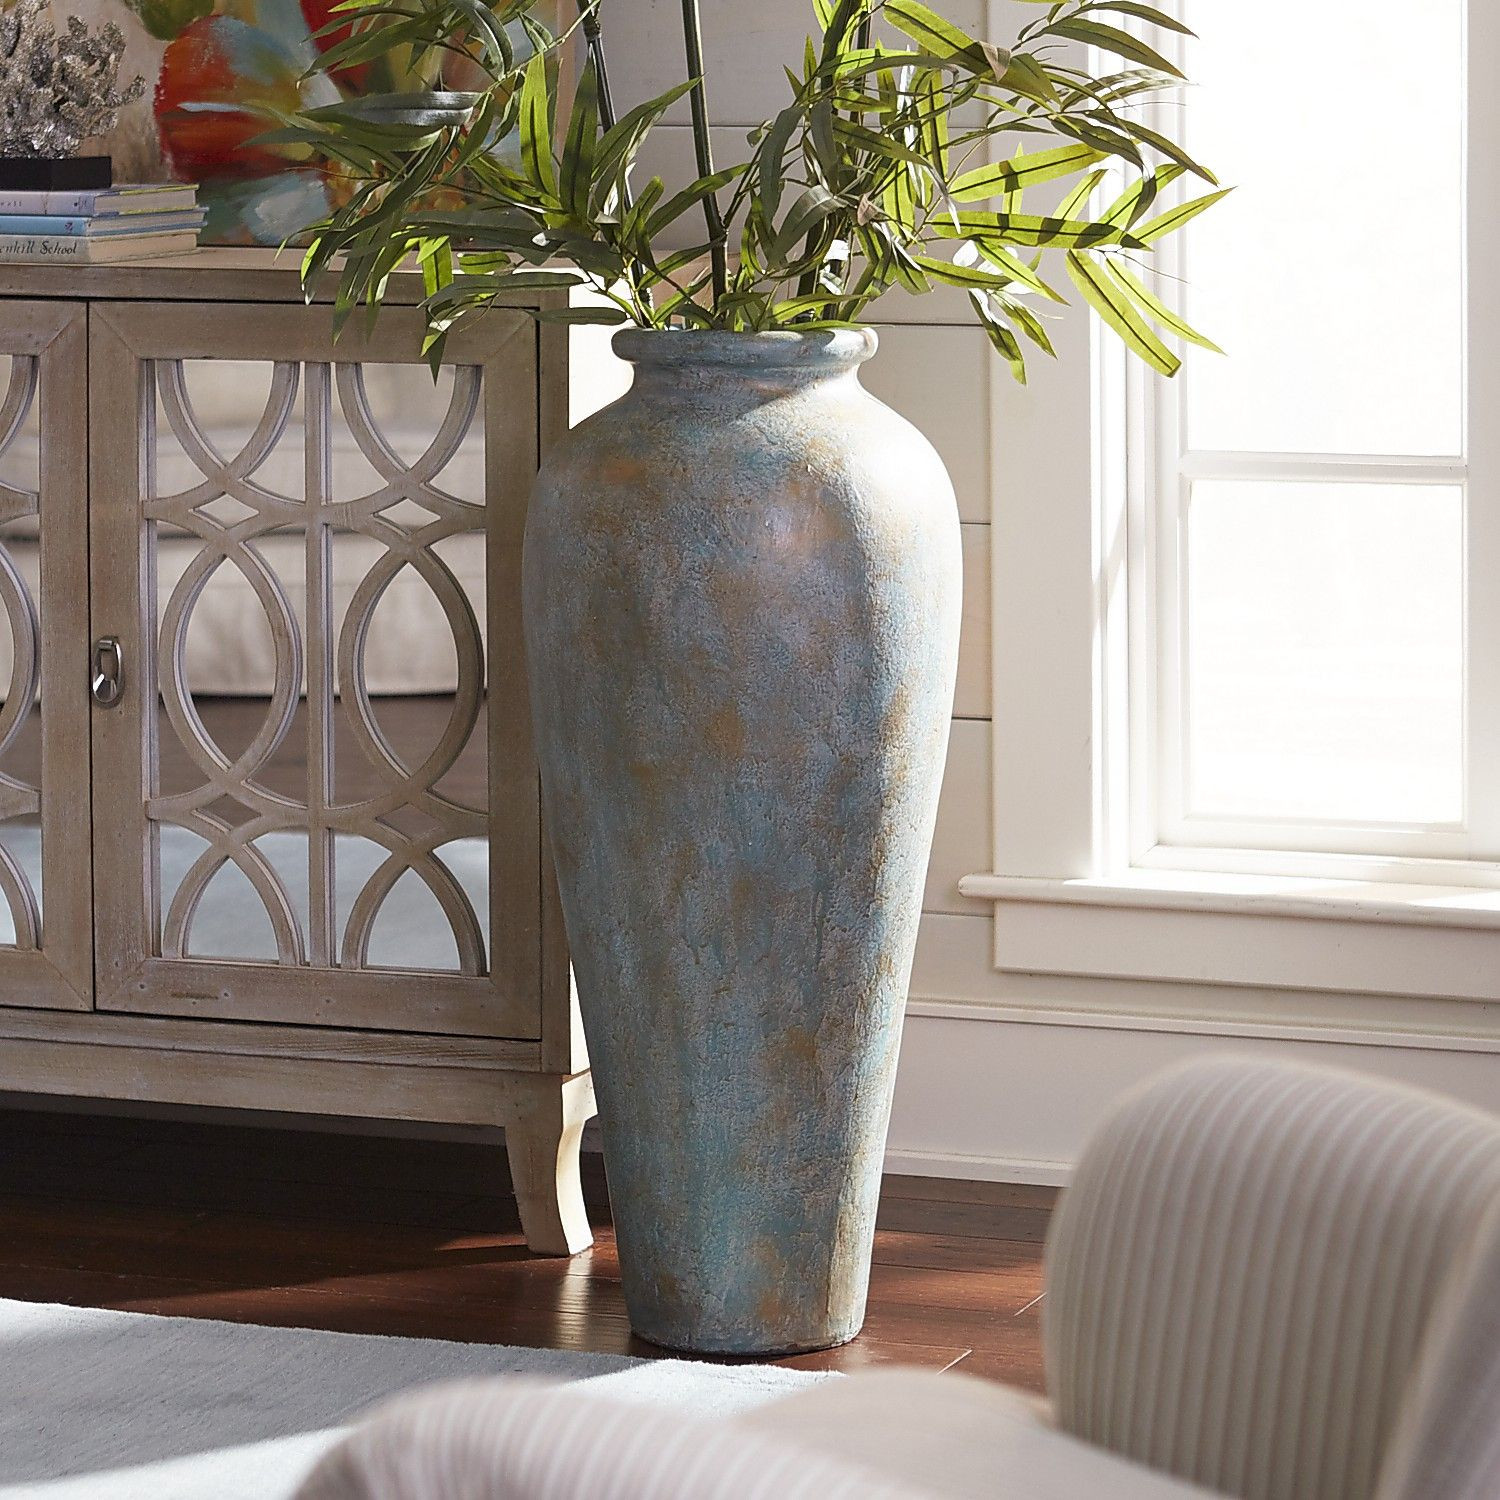 dark grey vase of blue green patina urn floor vase products pinterest flooring for blue green patina urn floor vase